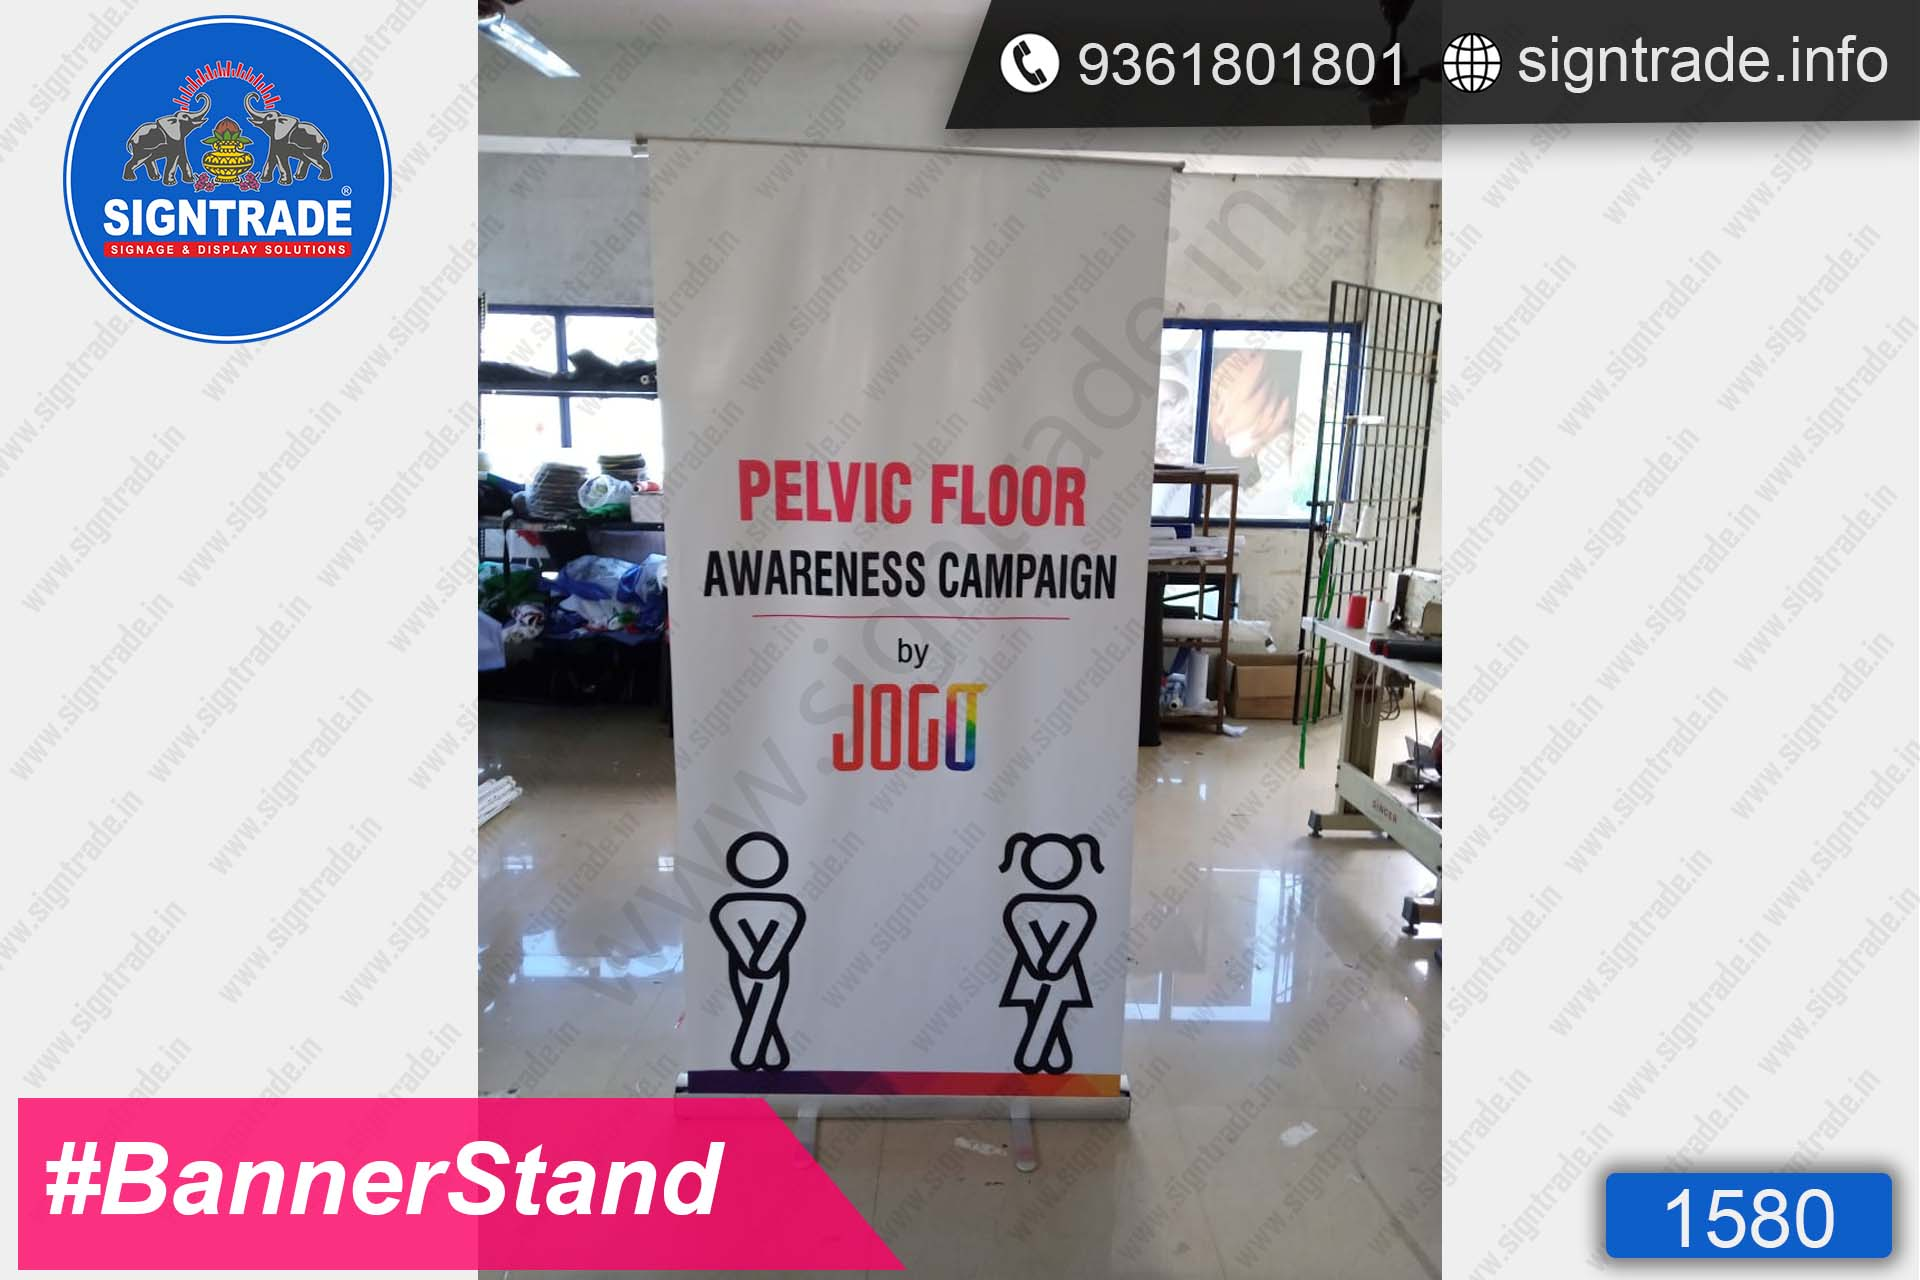 Pelvic floor awareness - SIGNTRADE - Roll Up Banner Stand Manufacturers in Chennai